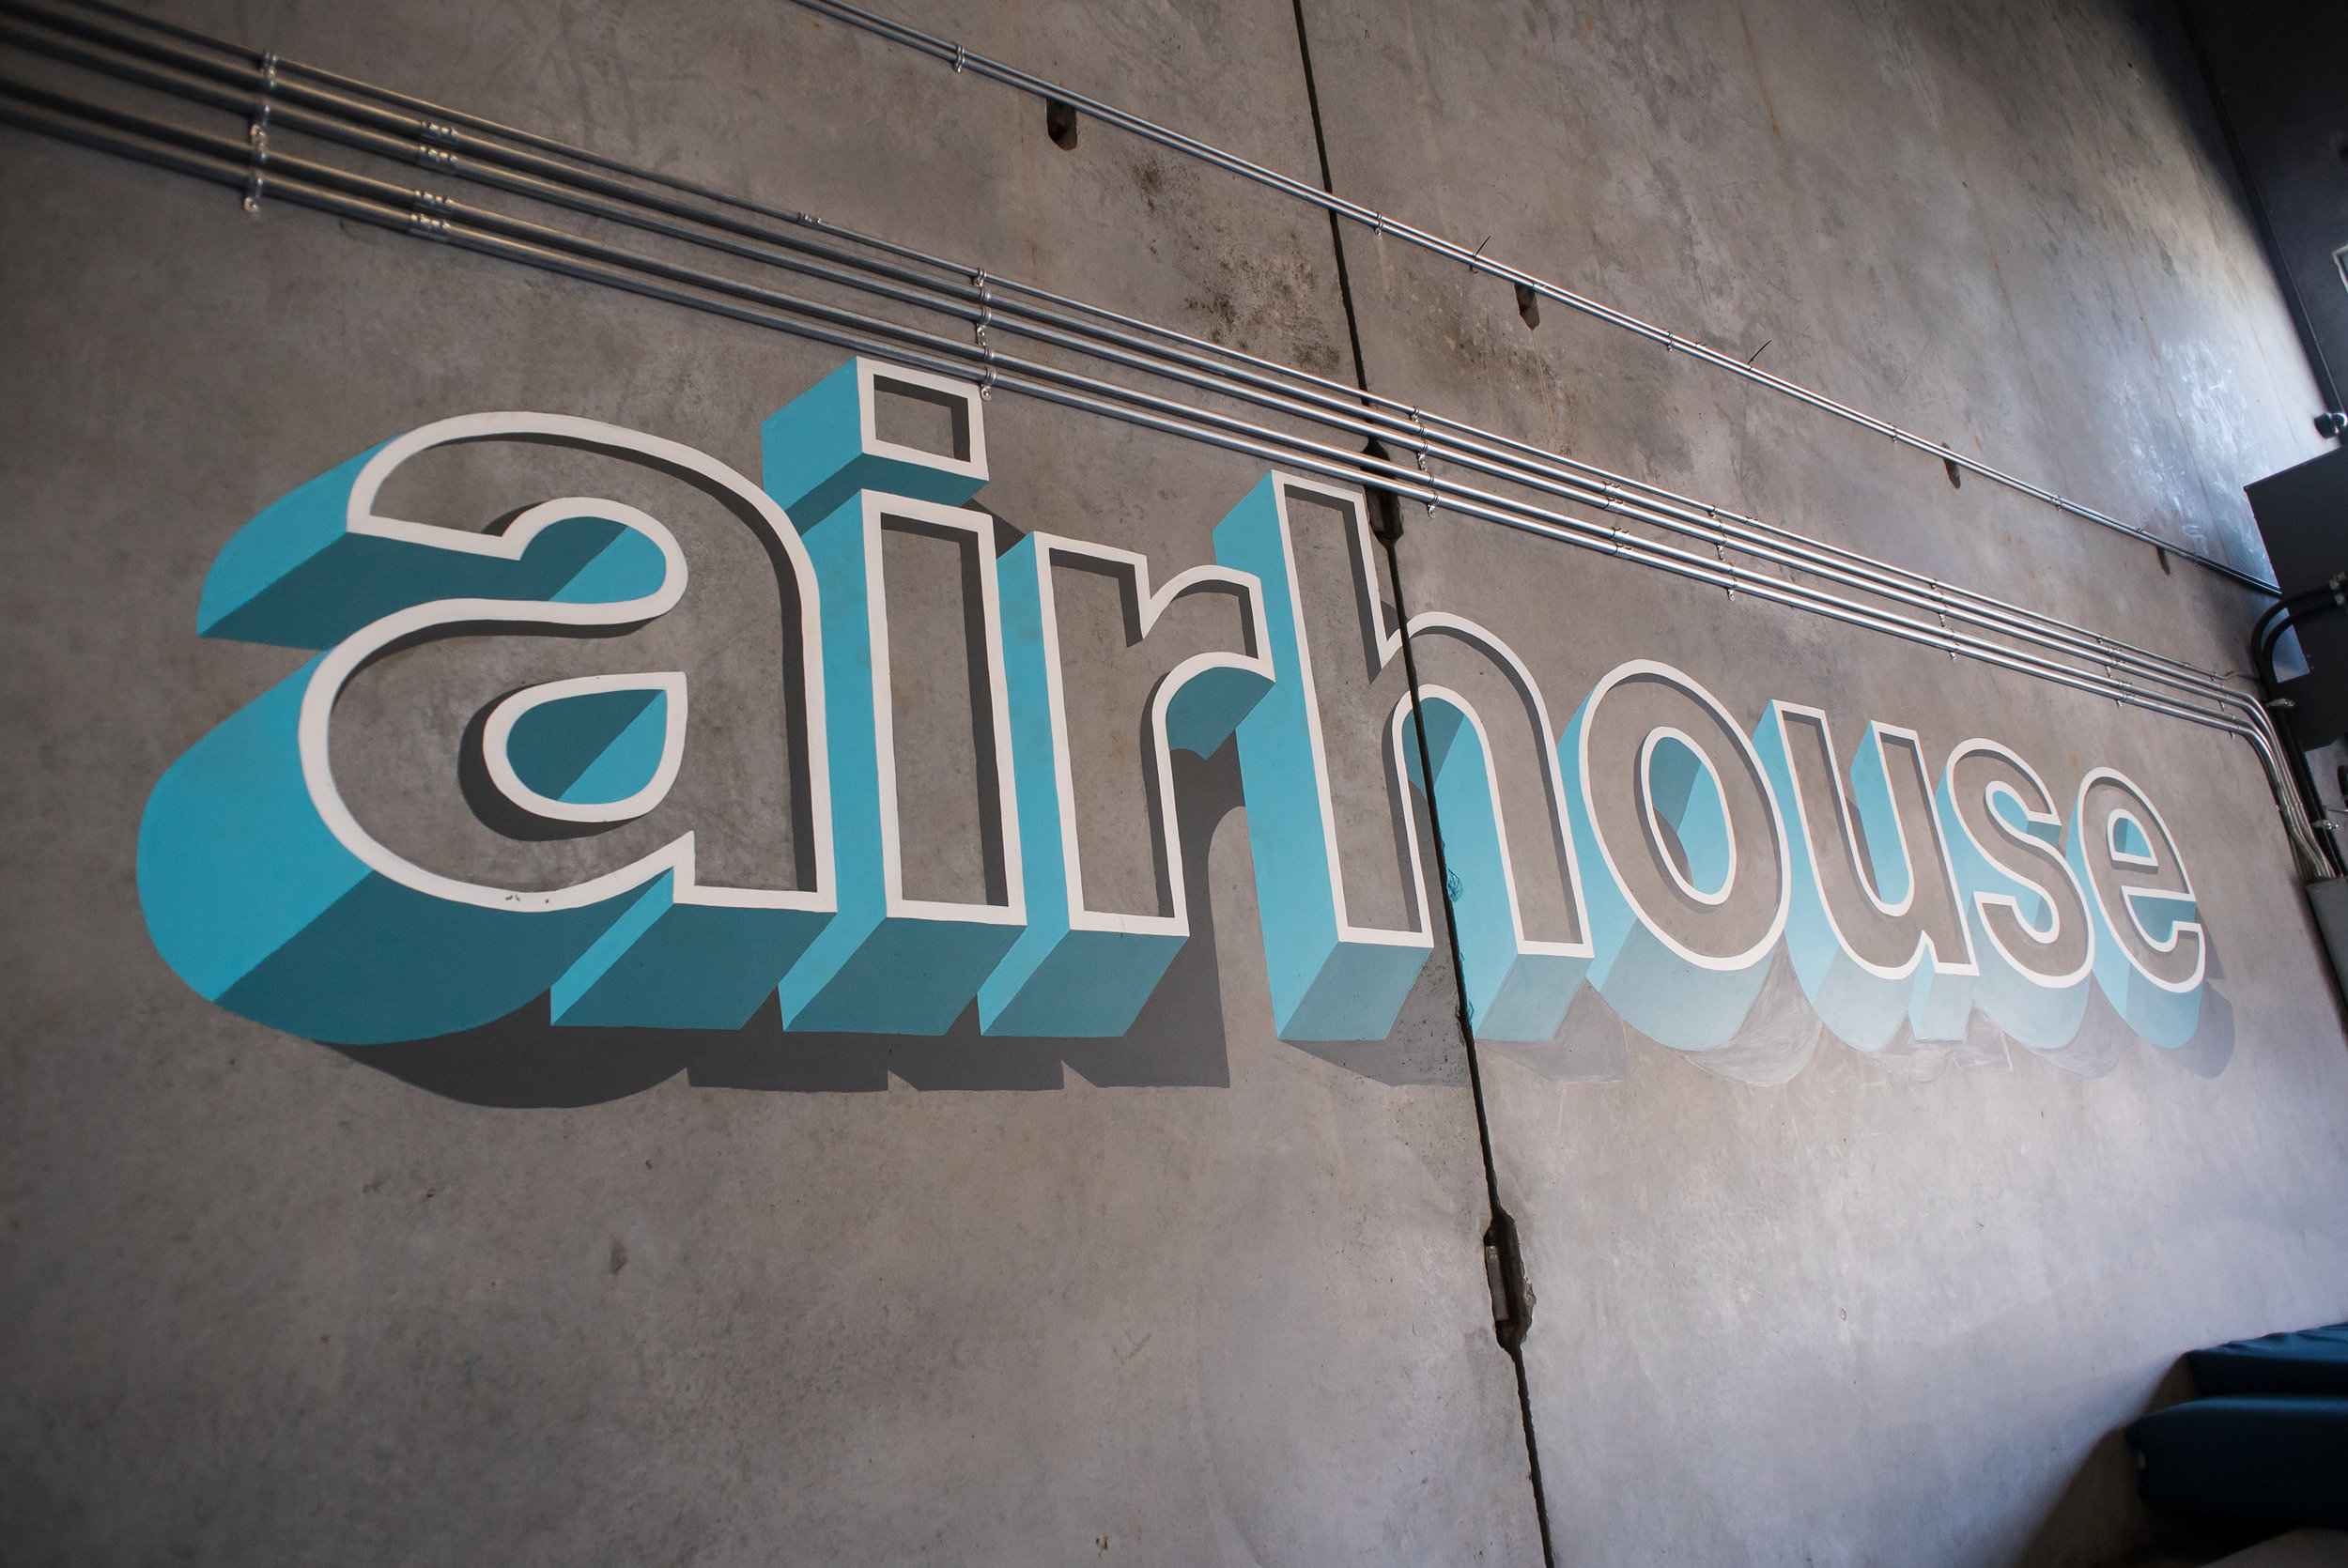 AIRHOUSE_DigitalAnthill_18.04.23-7.jpg